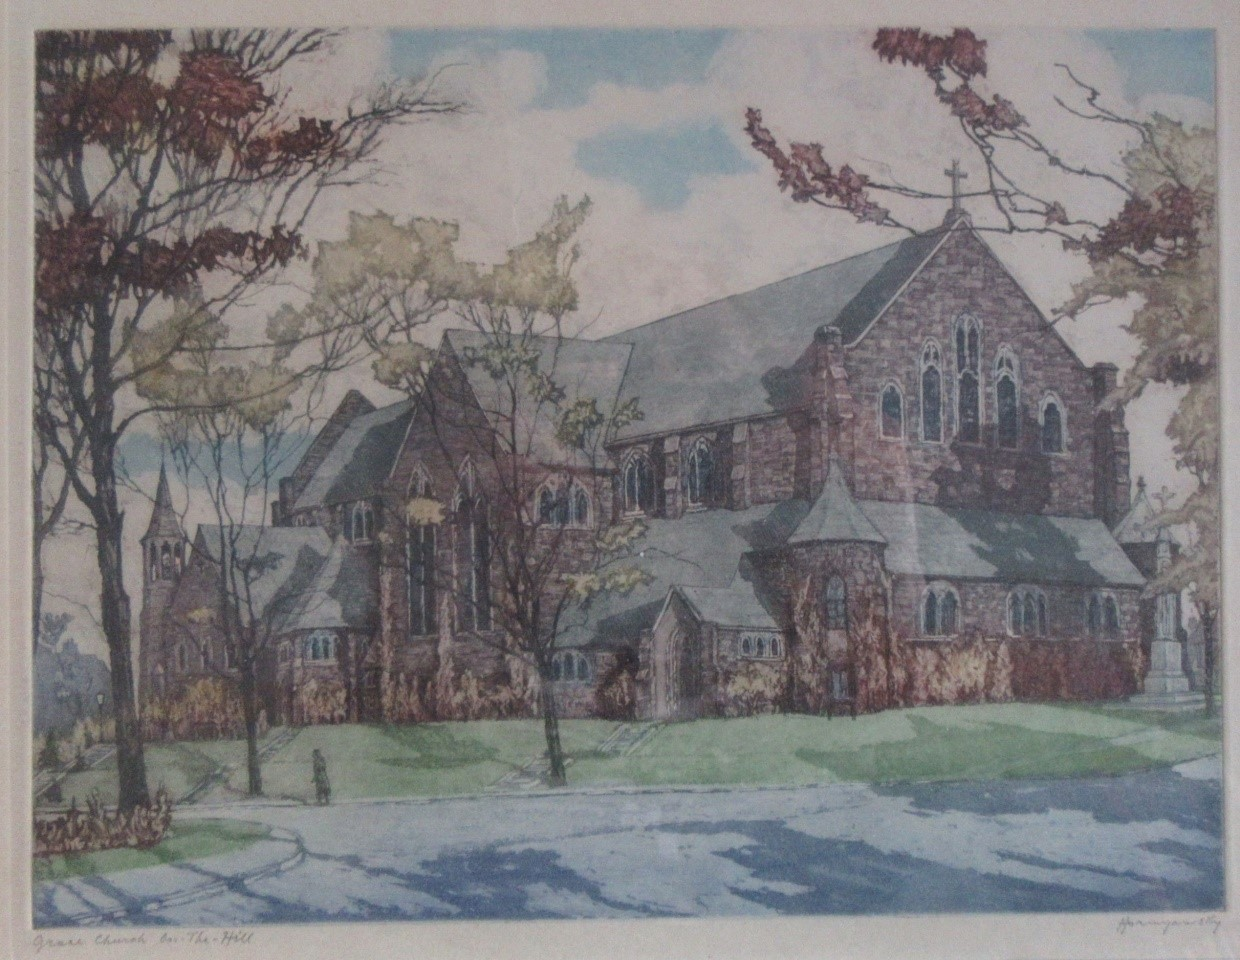 HORNYANSKY, Nicholas [1896-1965]. Grace Church On The Hill. Aquatint